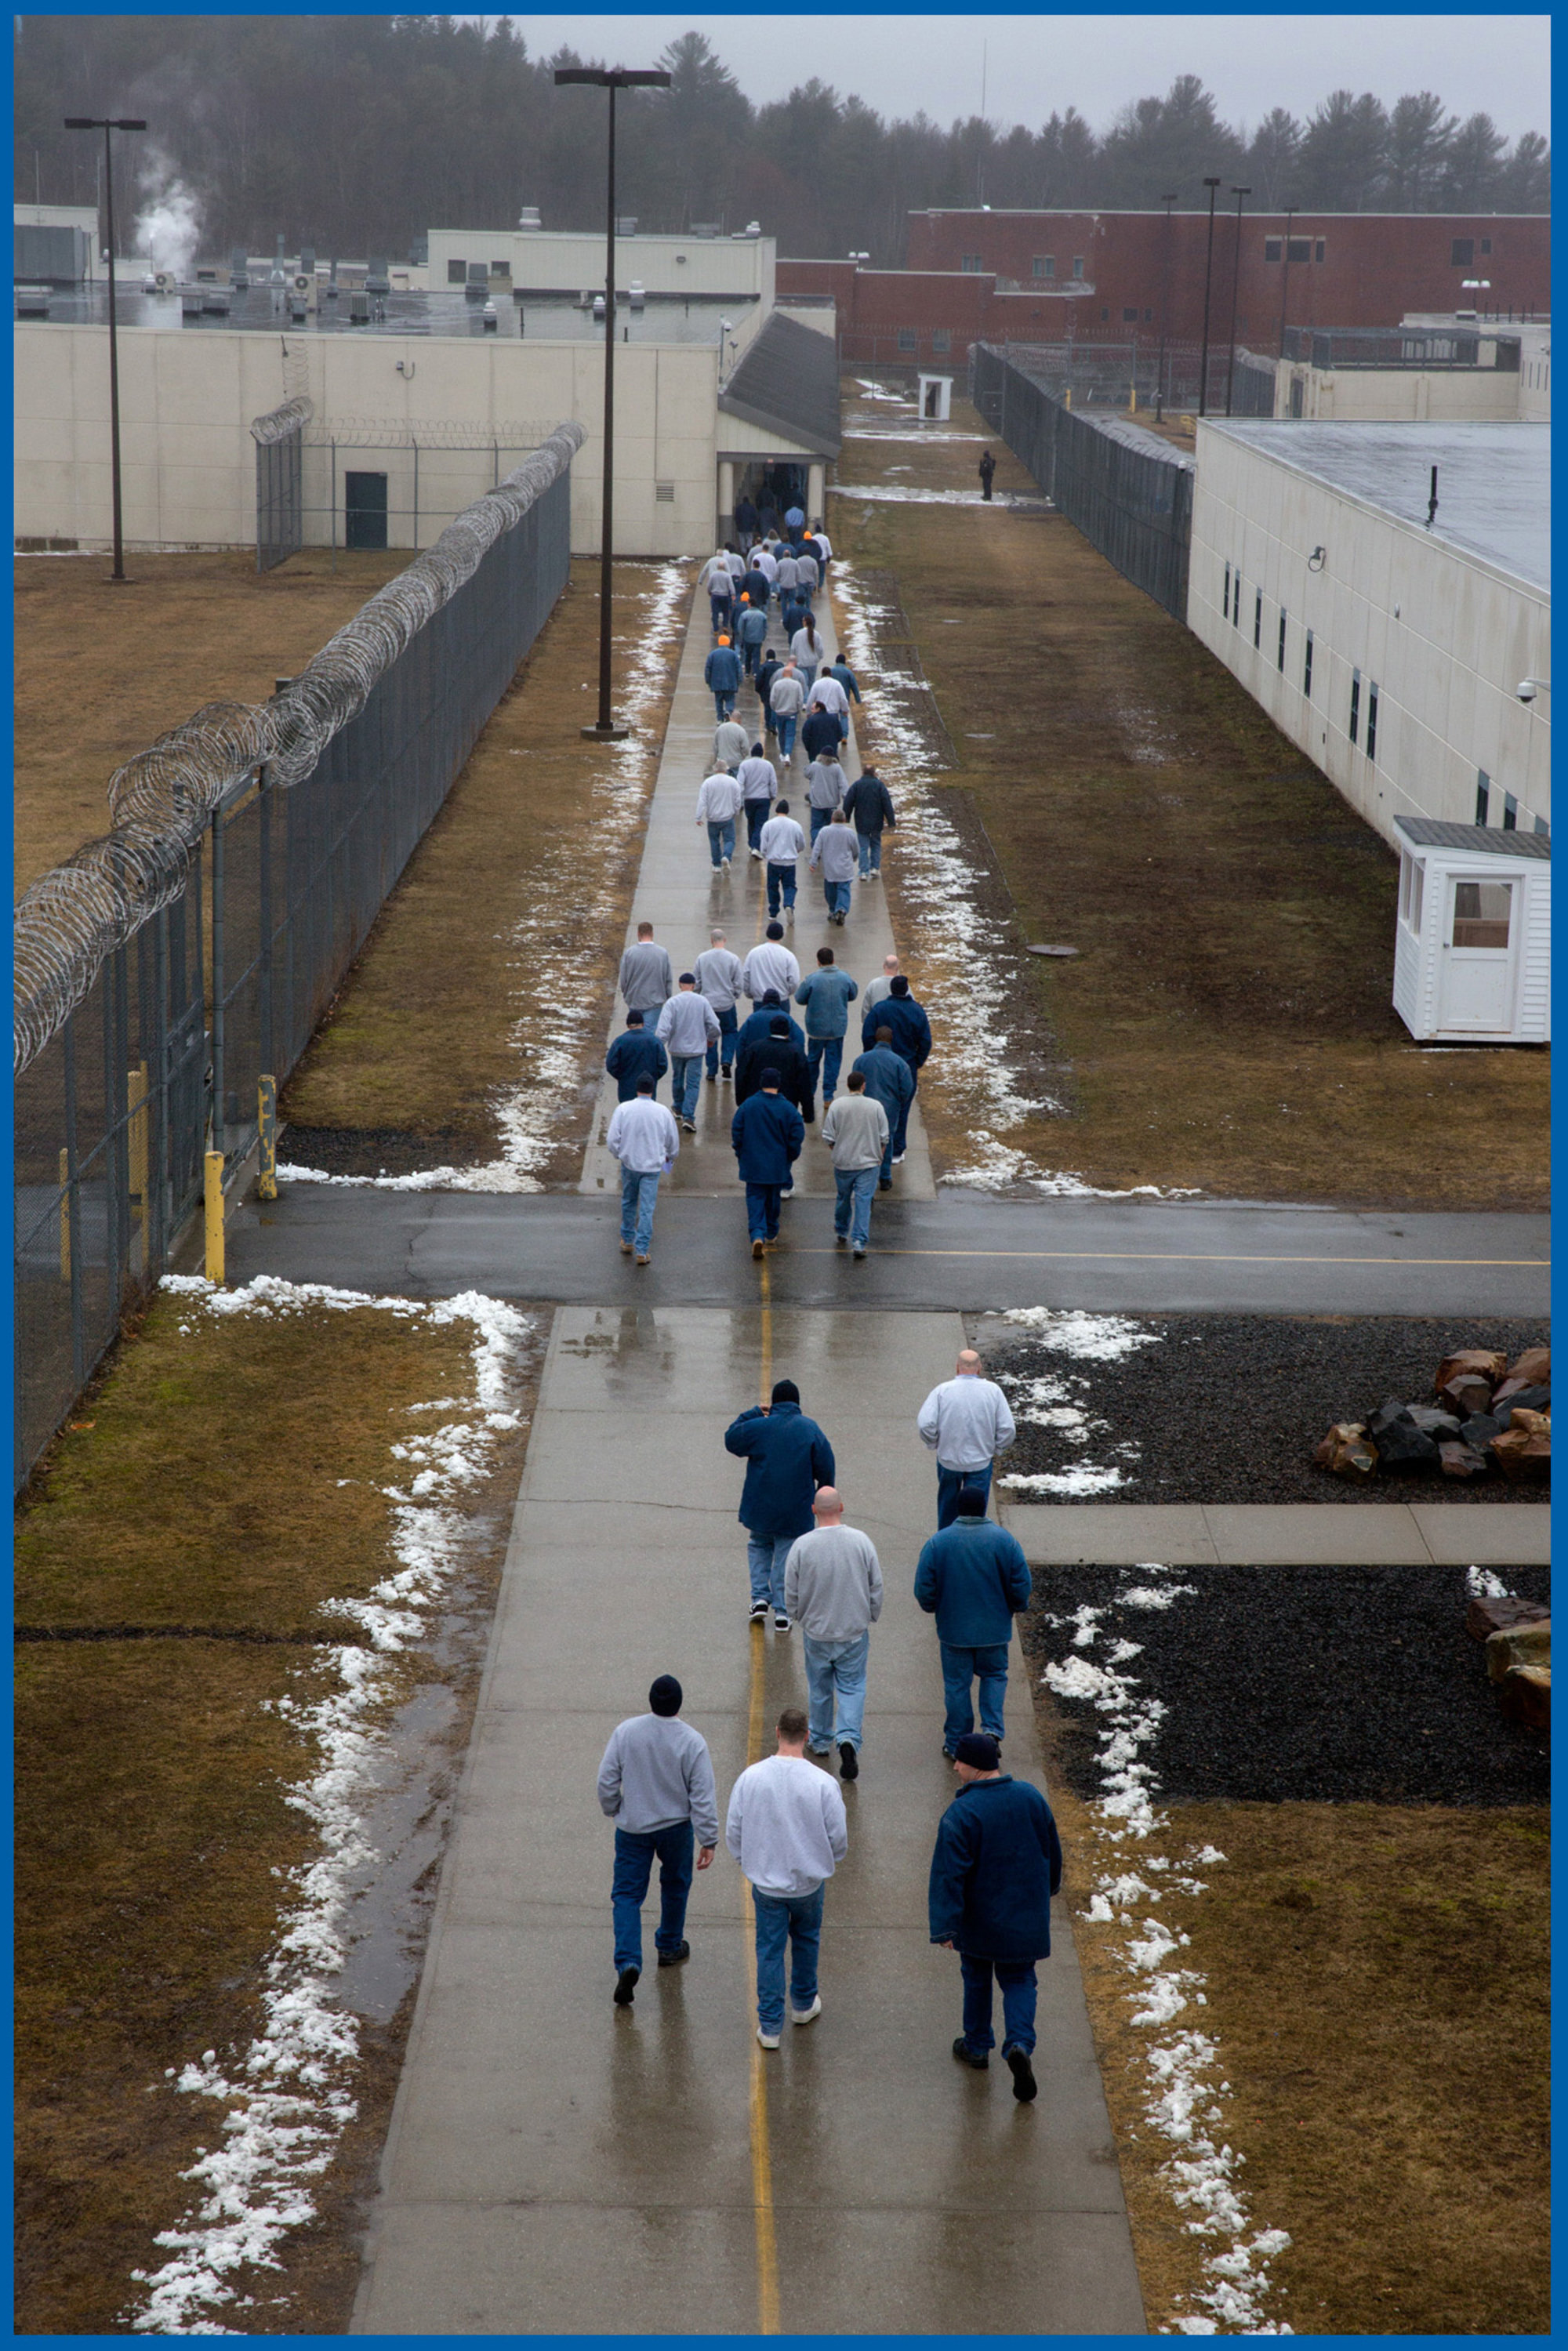 Men walked to the lunchroom at Maine State Prison in Warren, Maine, in 2016.